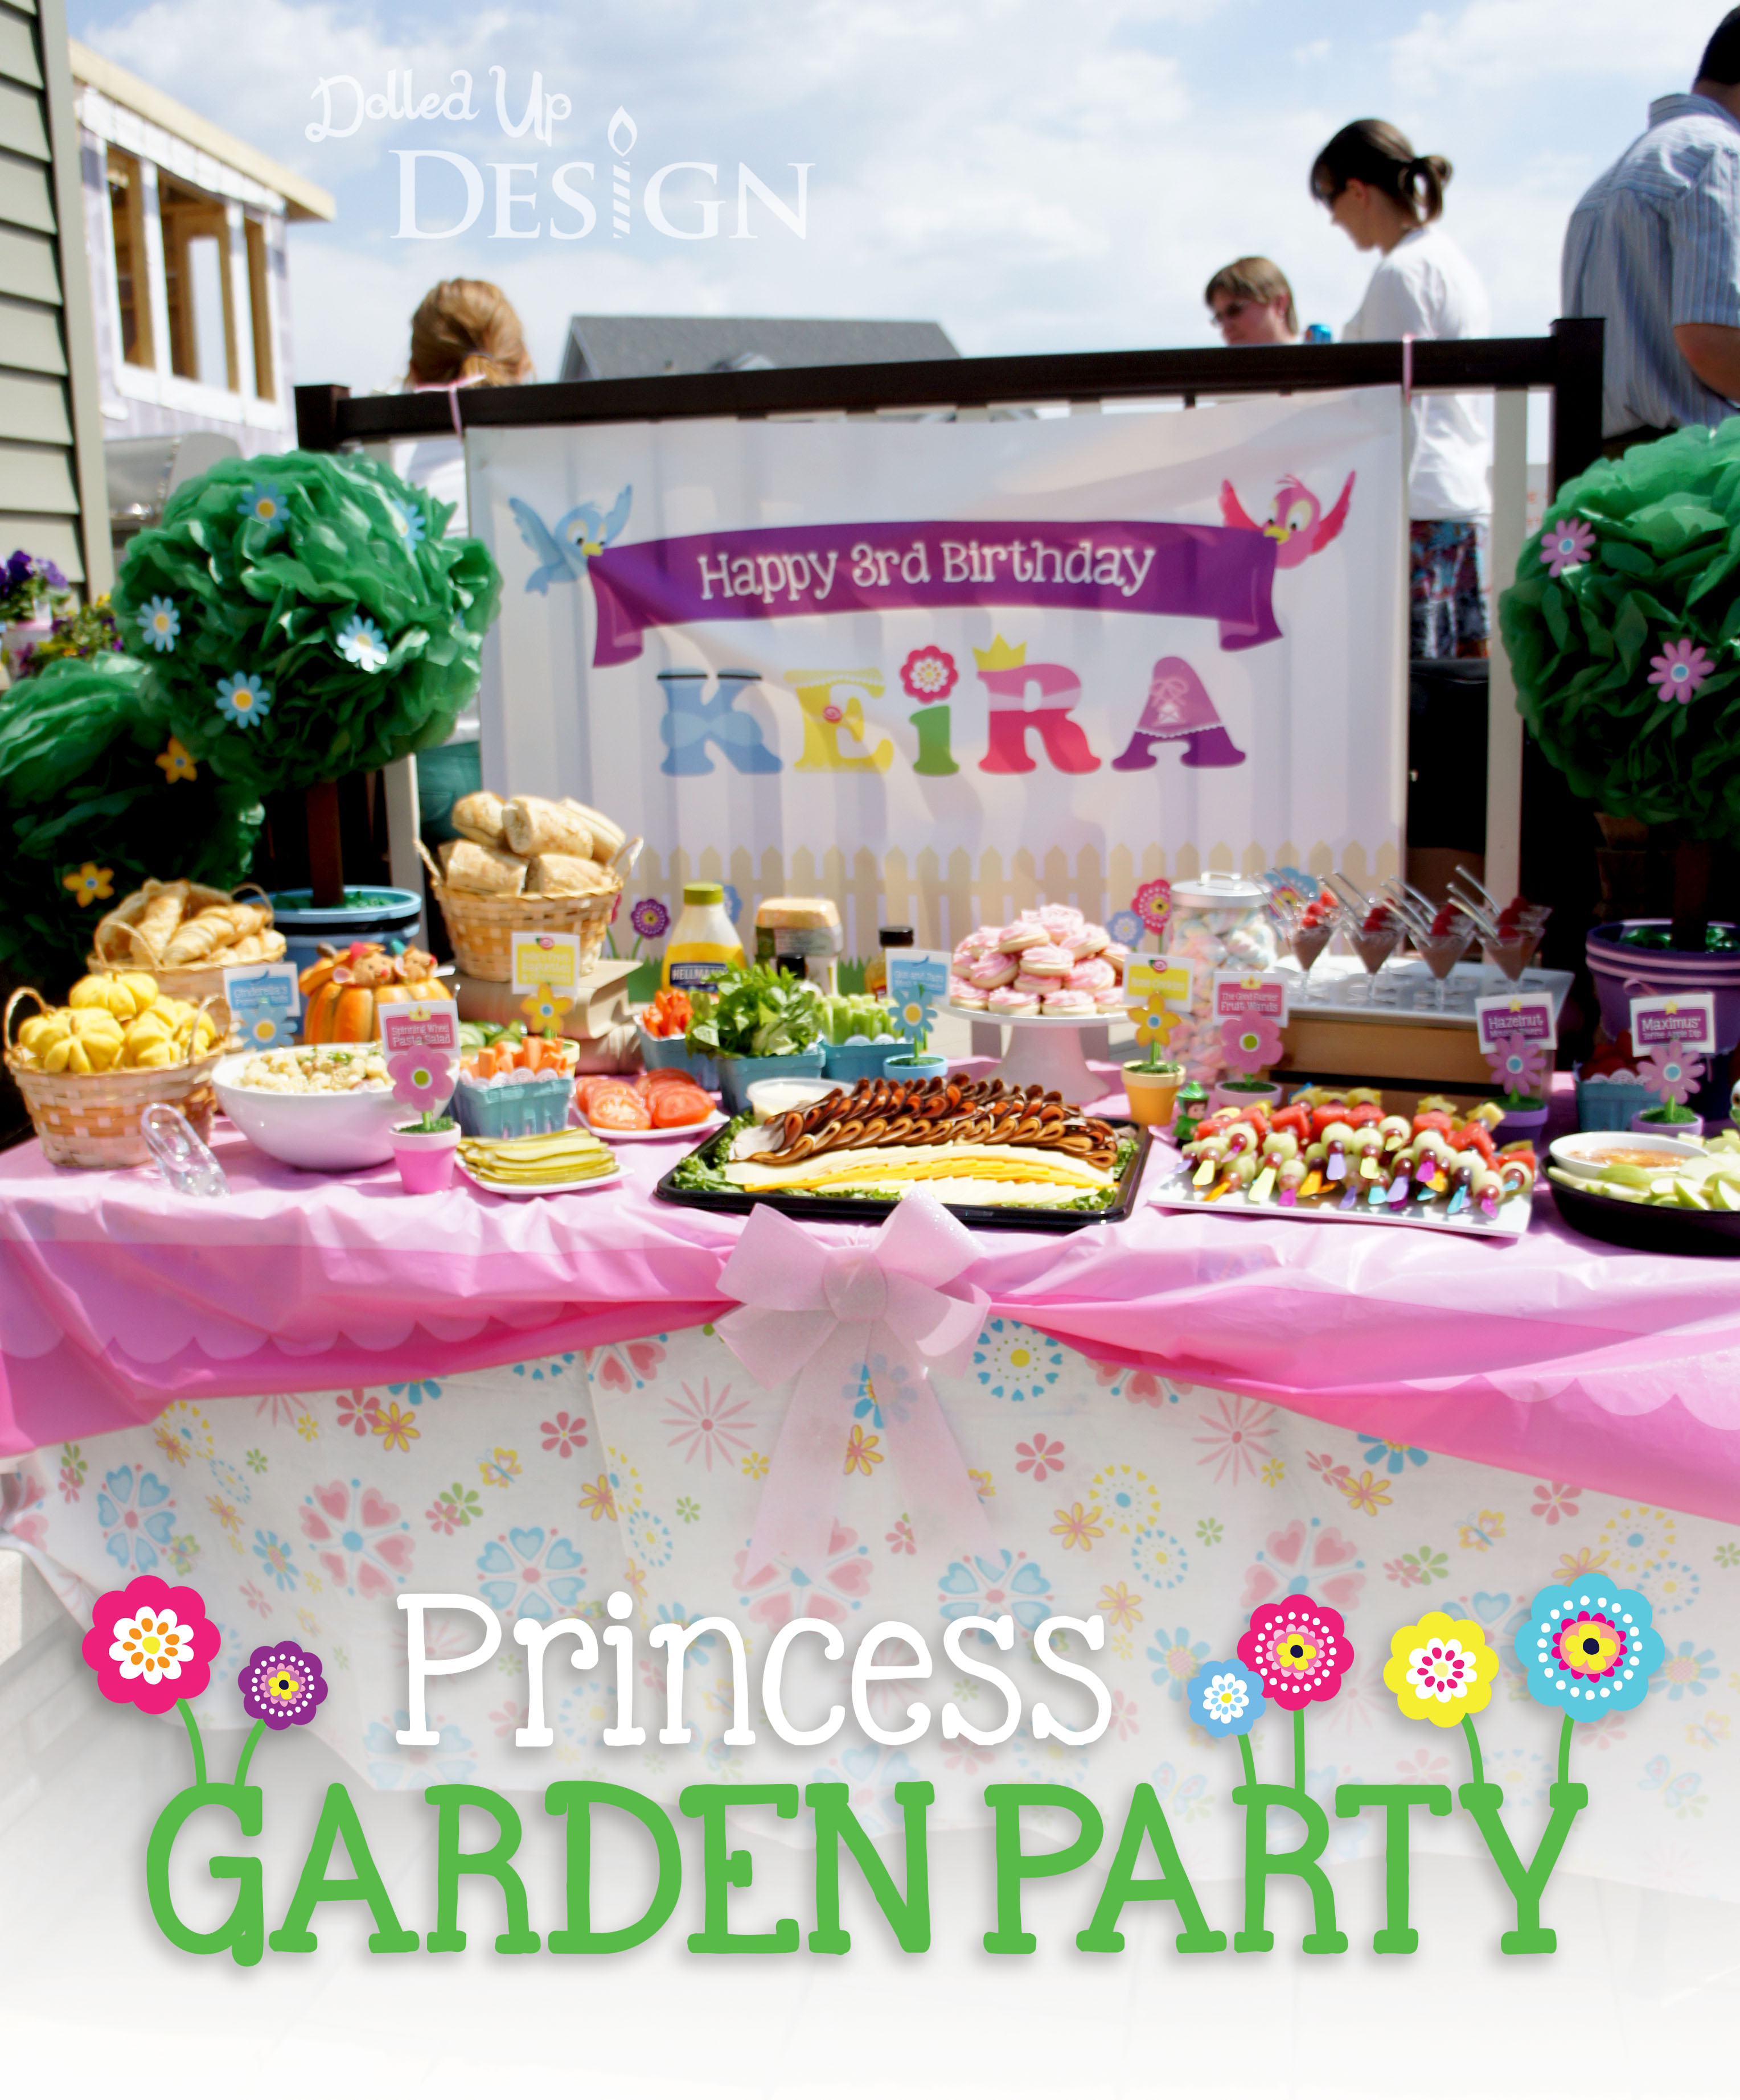 I Am So Excited To Share With You My Daughters Princess Garden Party Themed 3rd Birthday For The Second Year In A Row We Were Very Fortunate